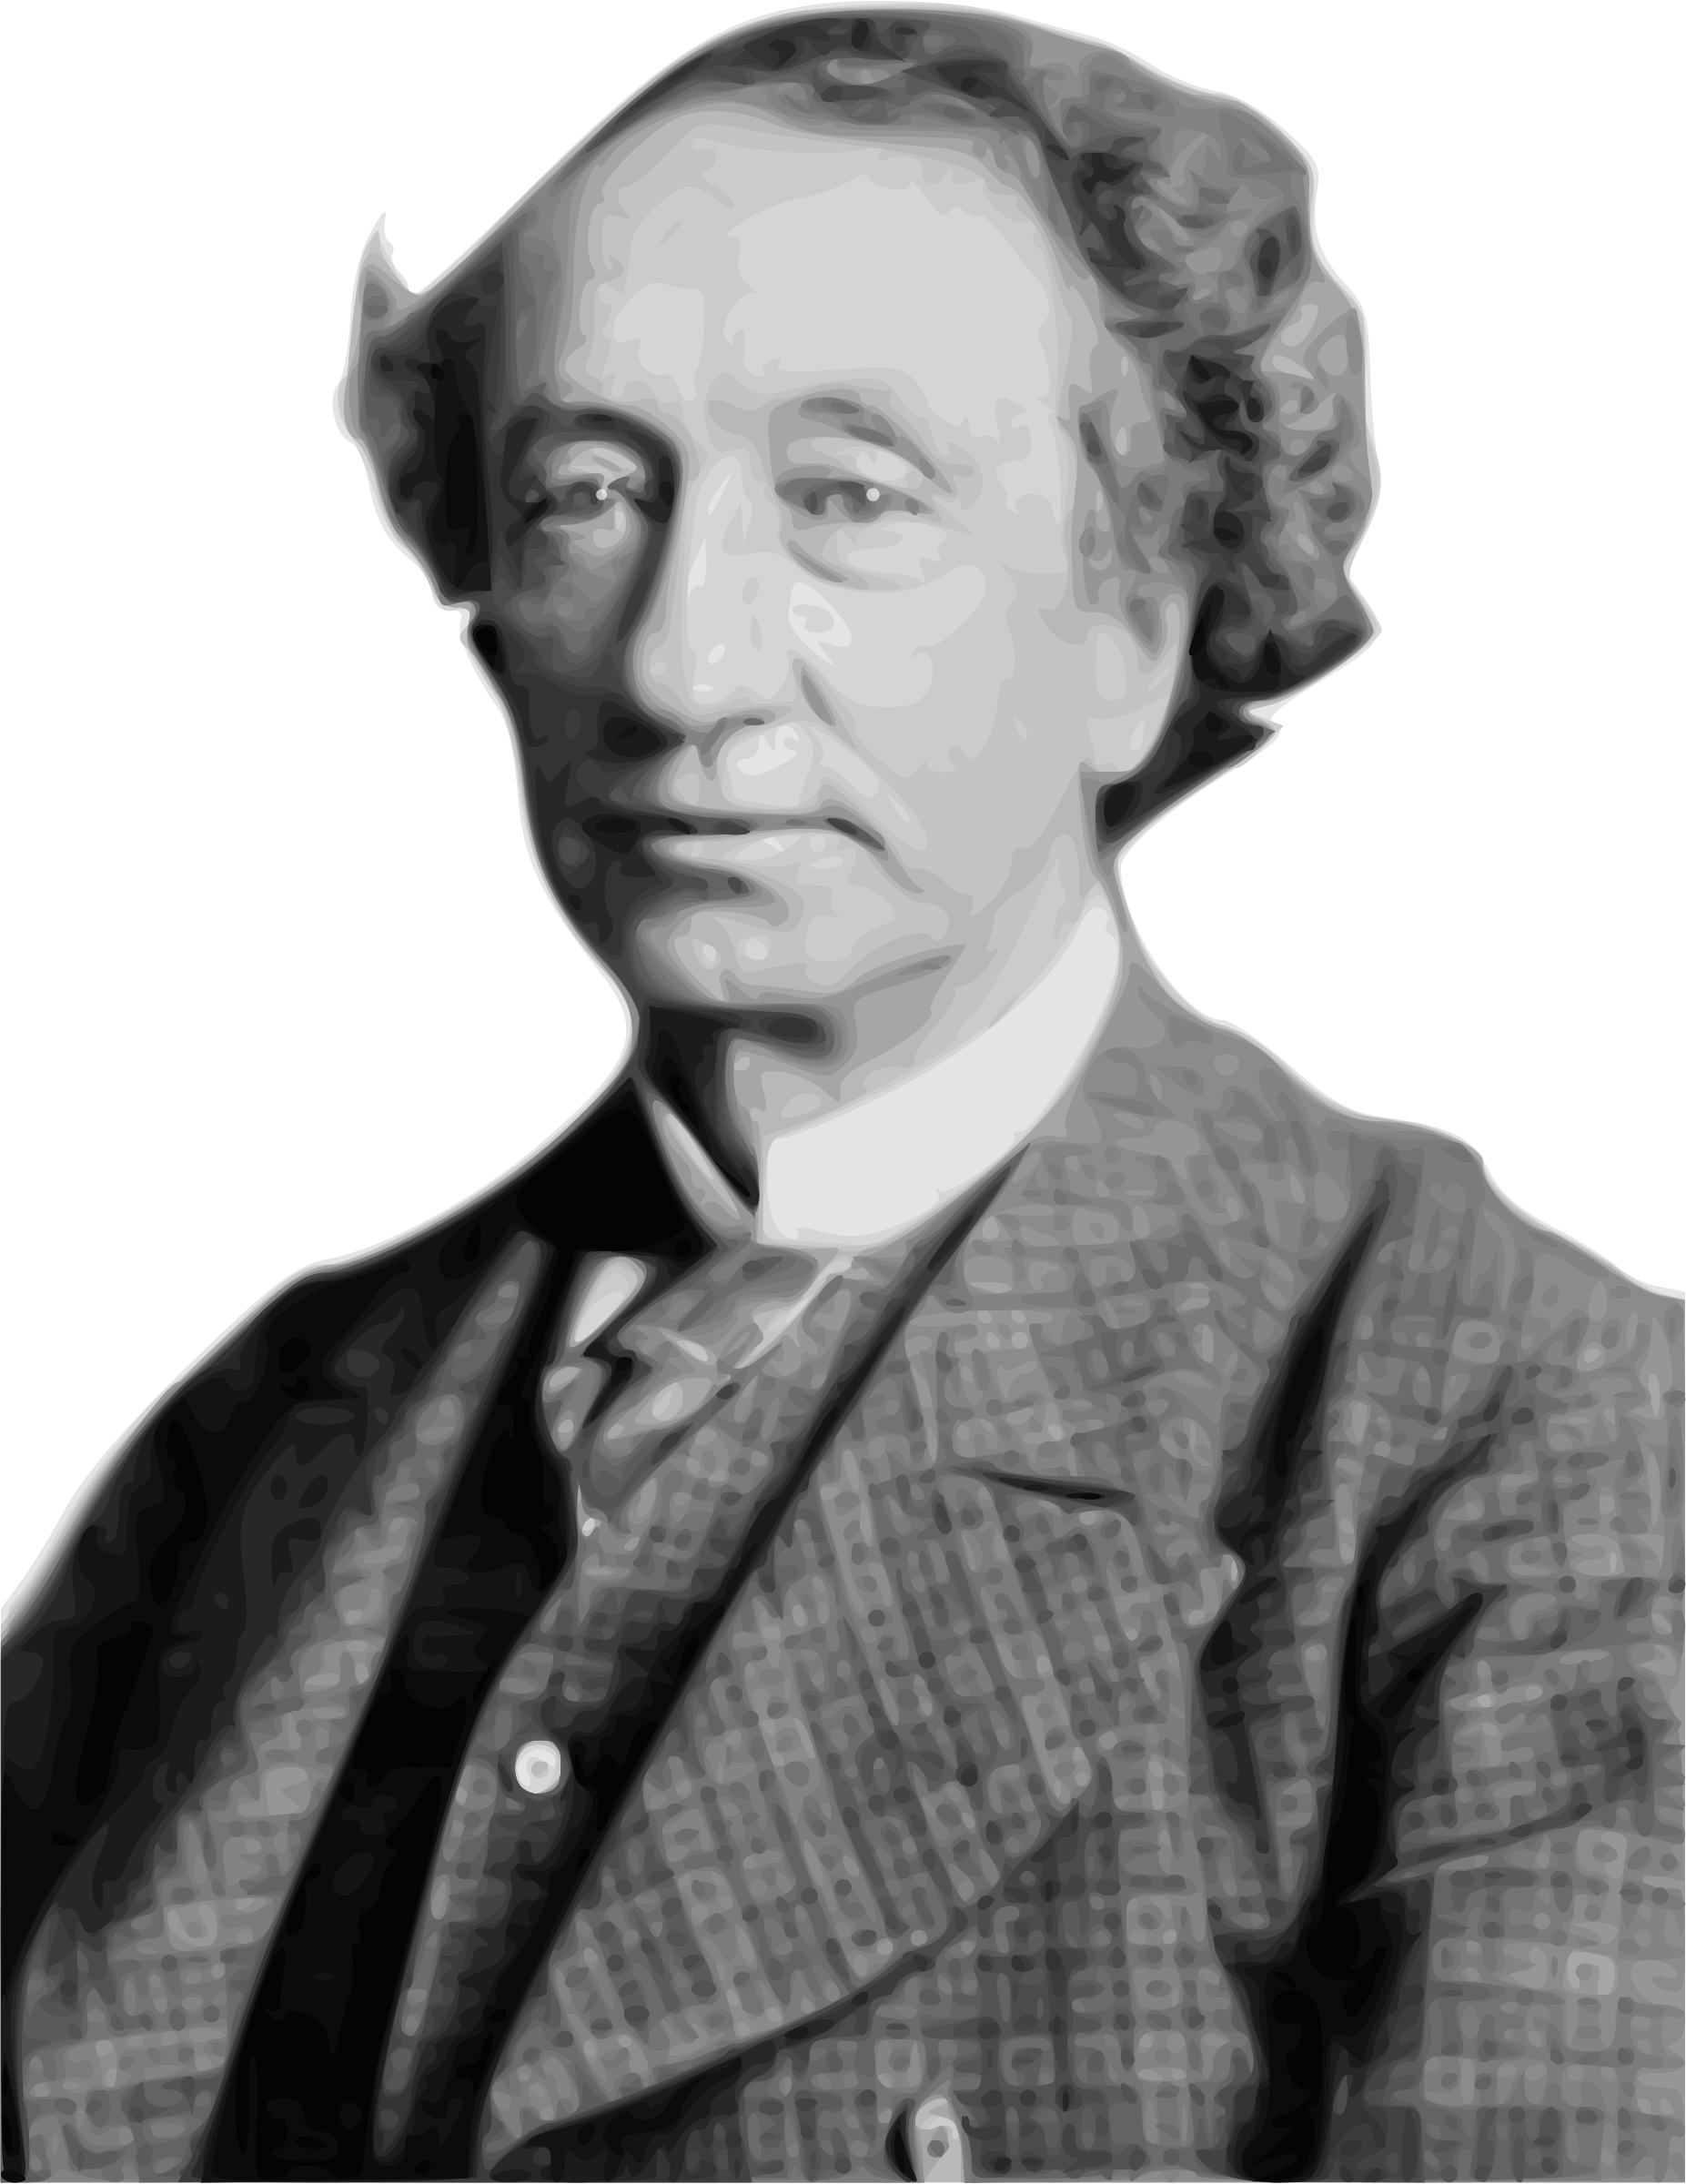 Sir John A. Macdonald 1st Prime Minister of Canada by Merlin2525